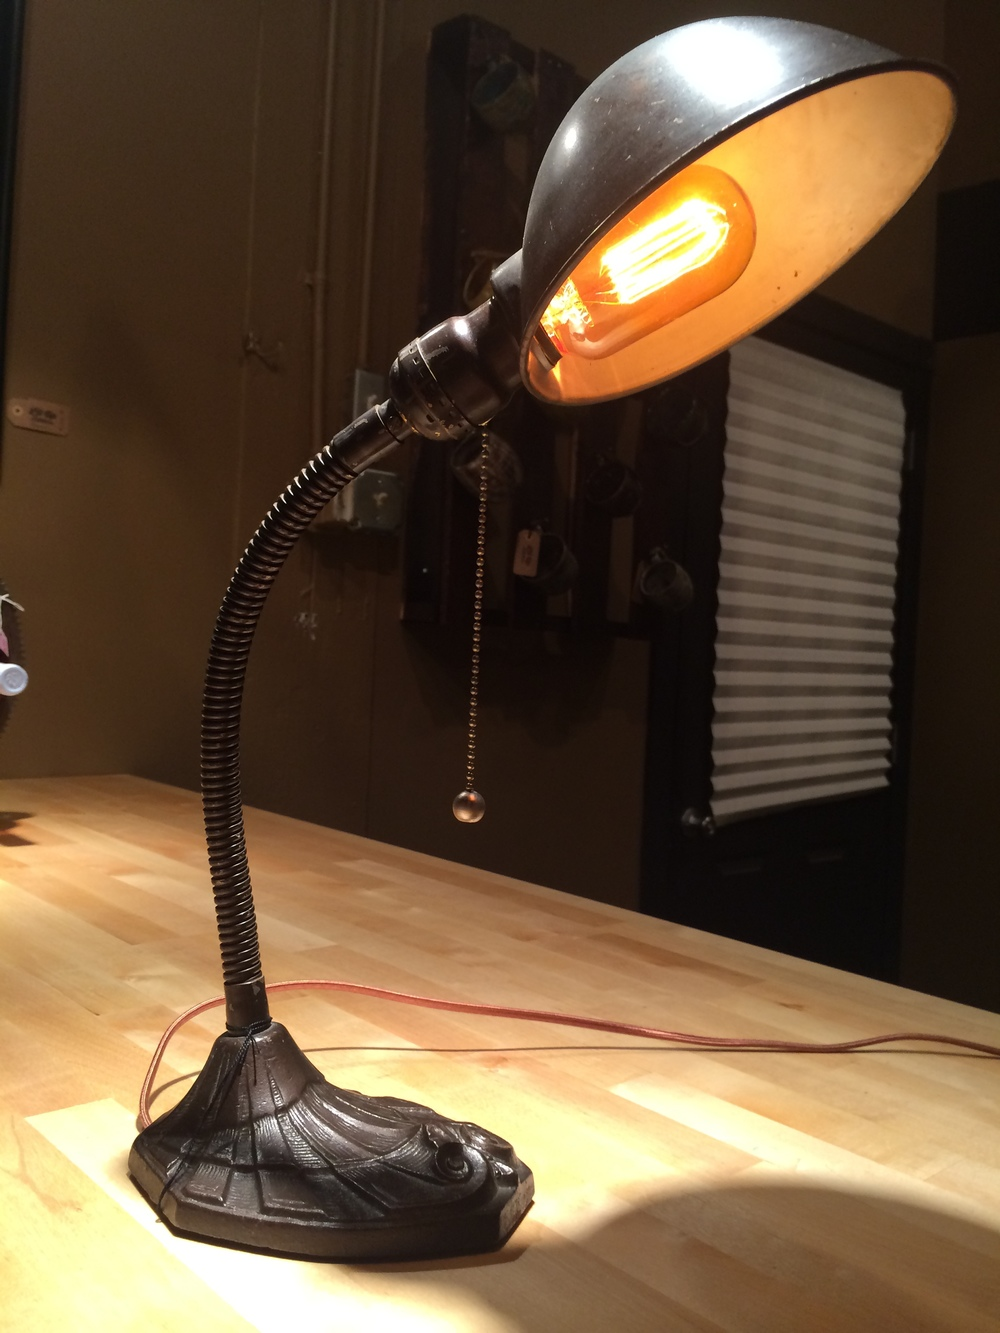 1940s Desk Lamp - $75 SOLD